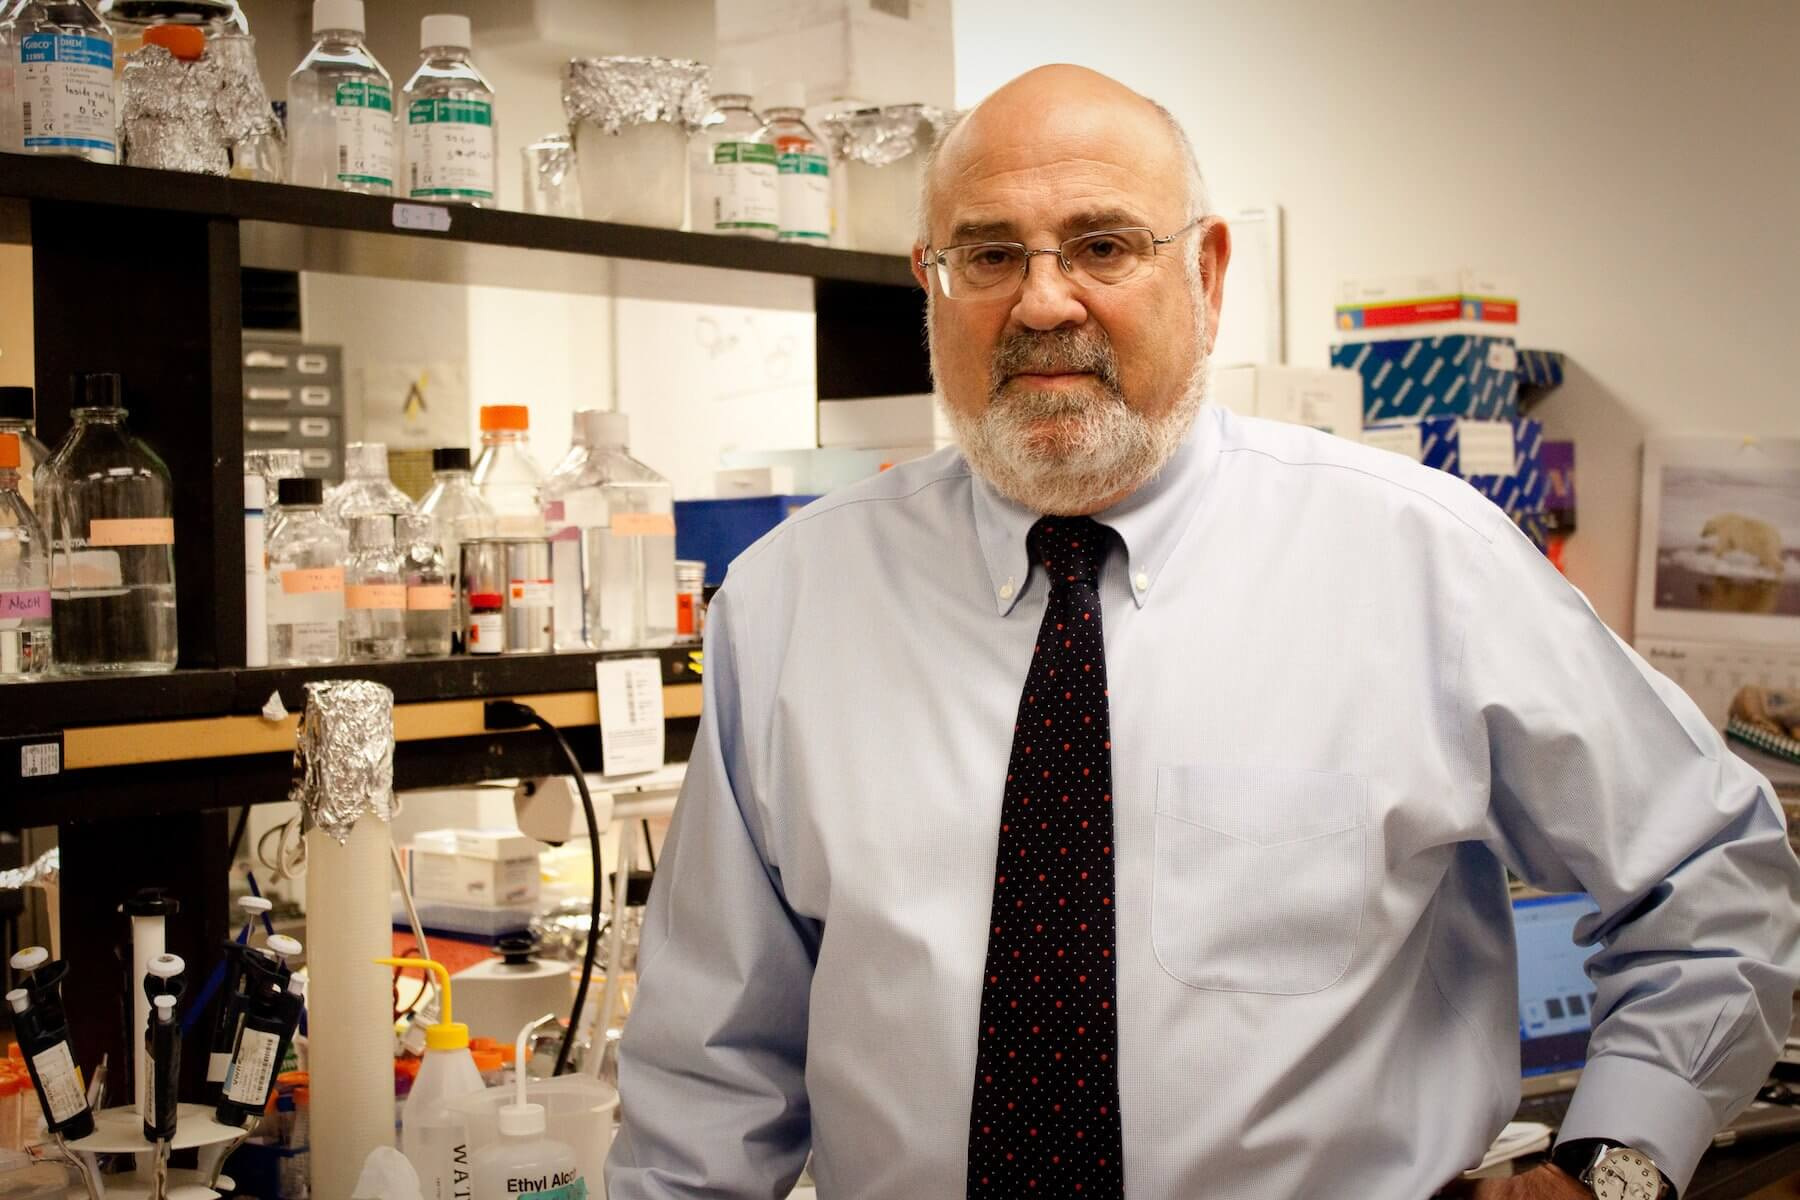 Robert Schwartz, Ph.D., Cullen Distinguished Professor of Biochemistry and the head of the Stem Cell Engineering Laboratory at Texas Heart Institute.